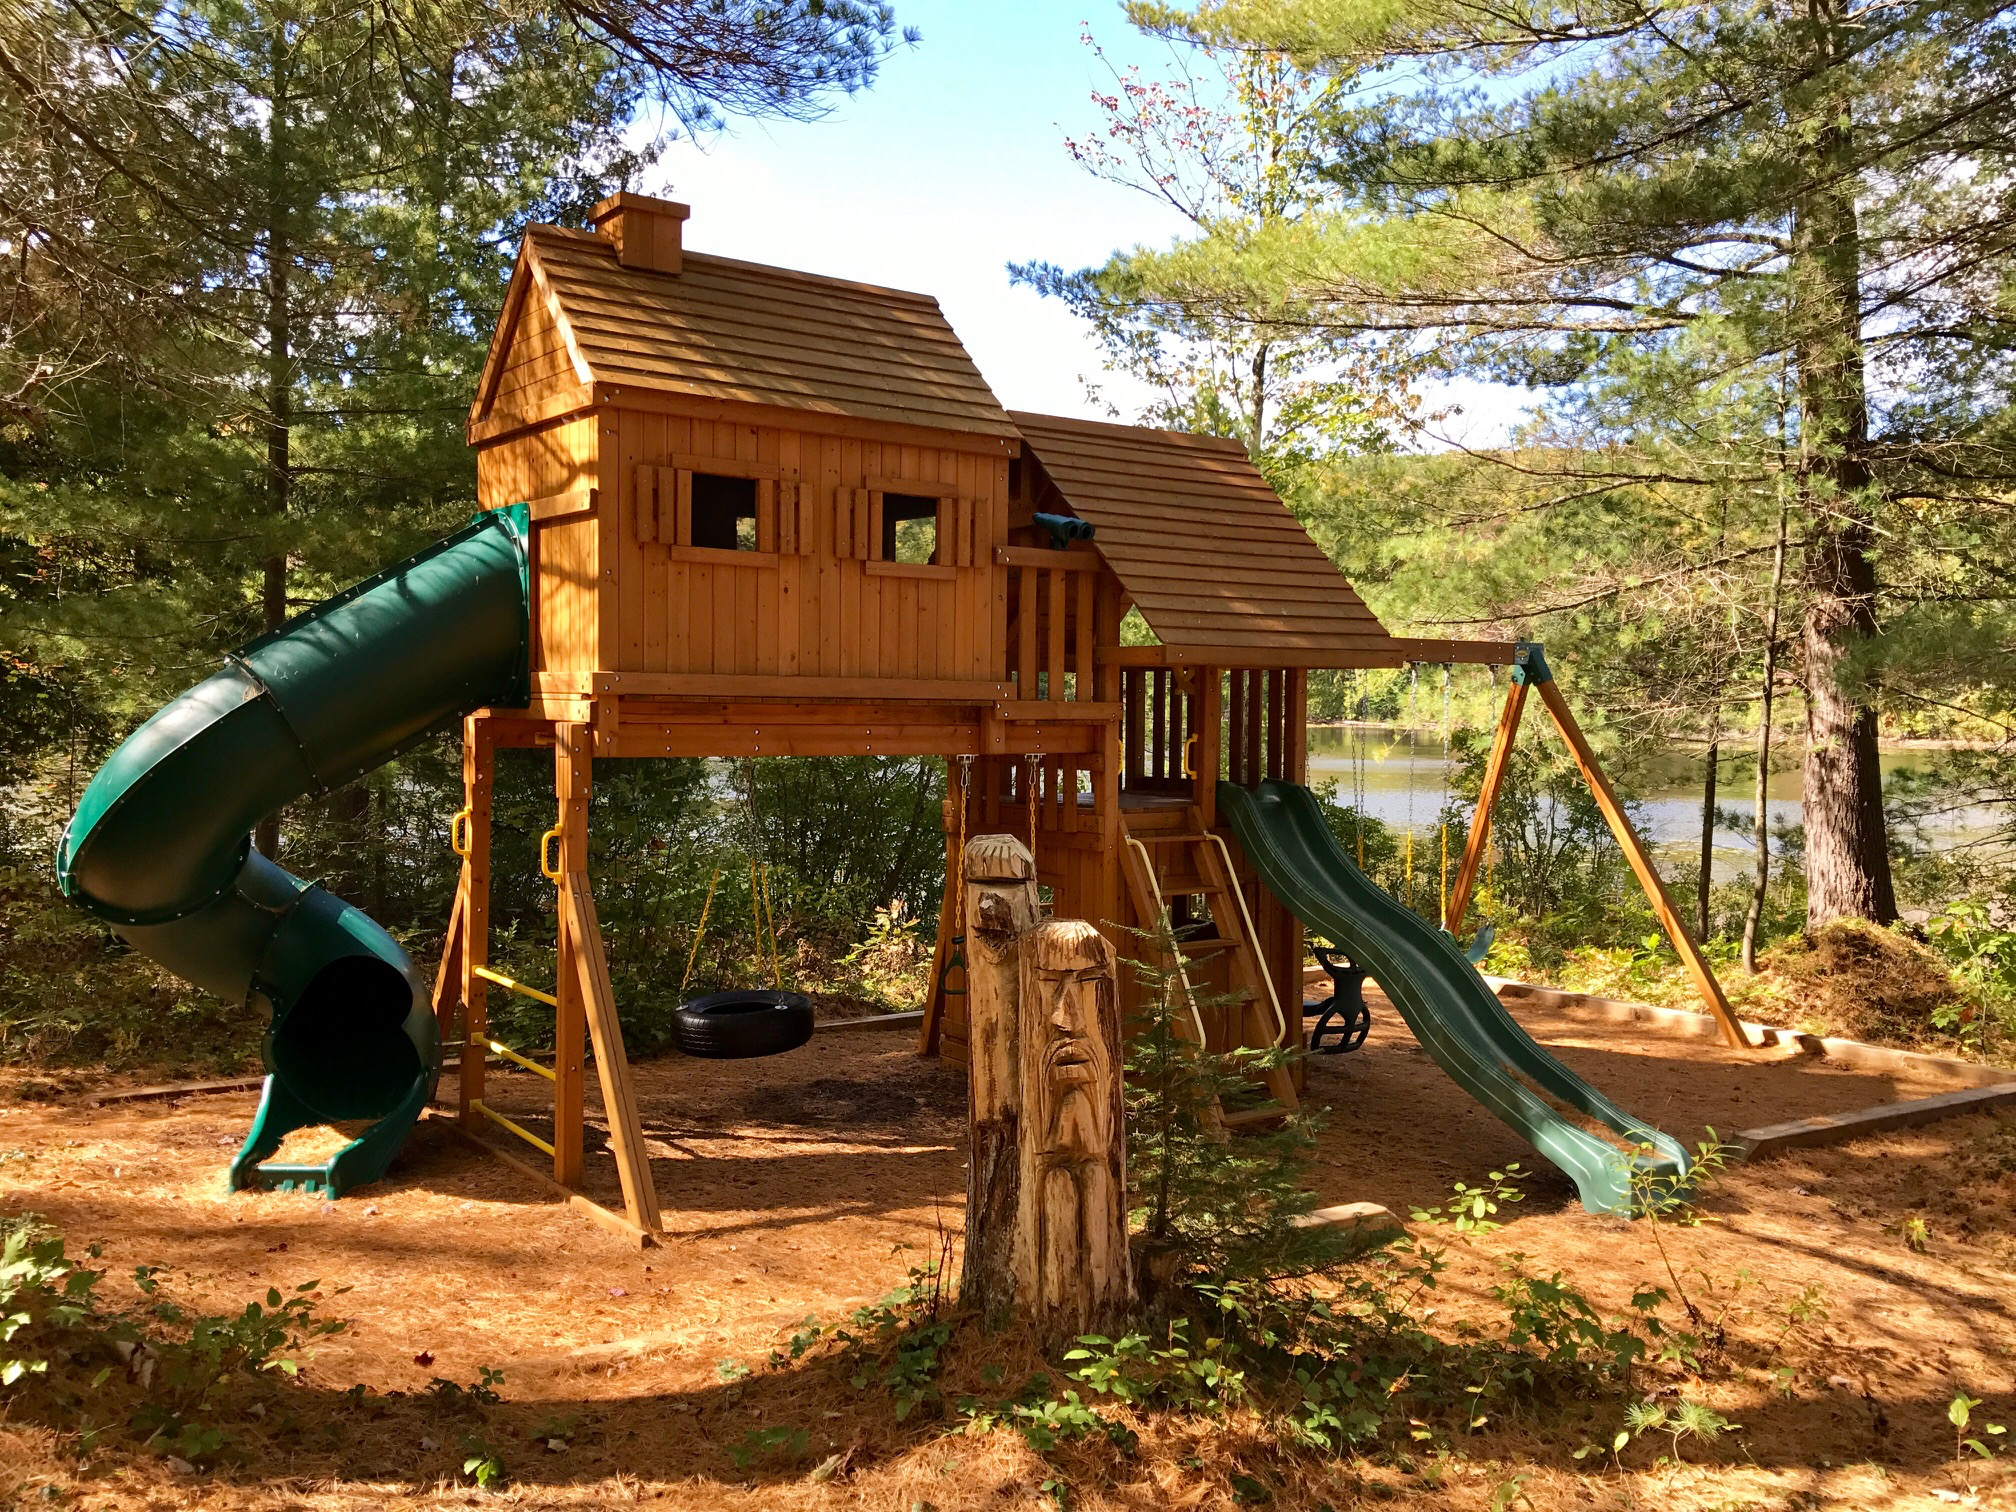 The Playhouse at The Bear Stand - a Kid's Dream Come True